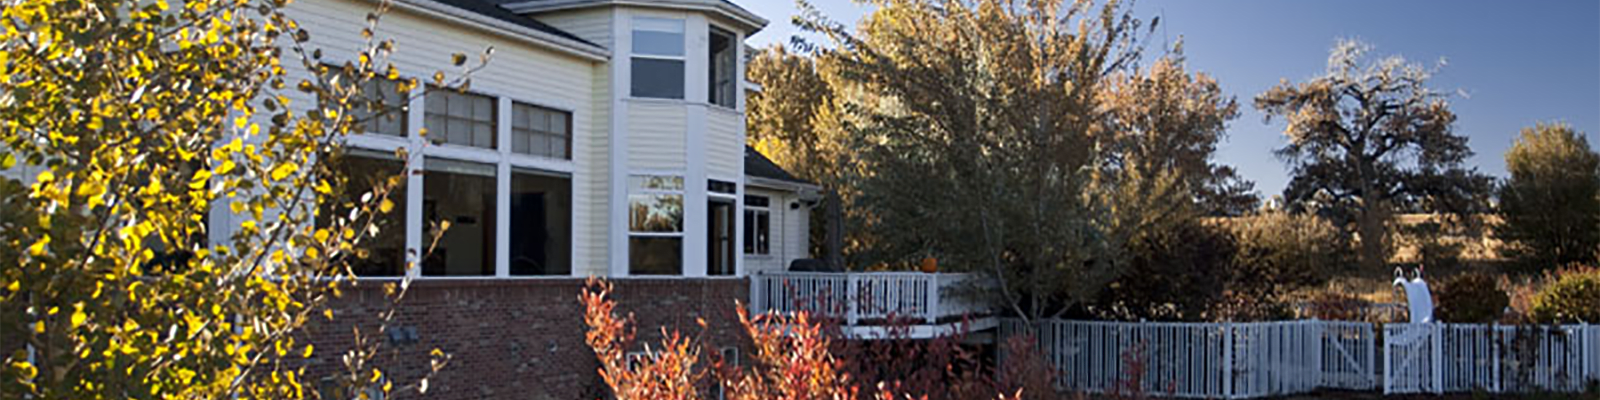 rose house home photo